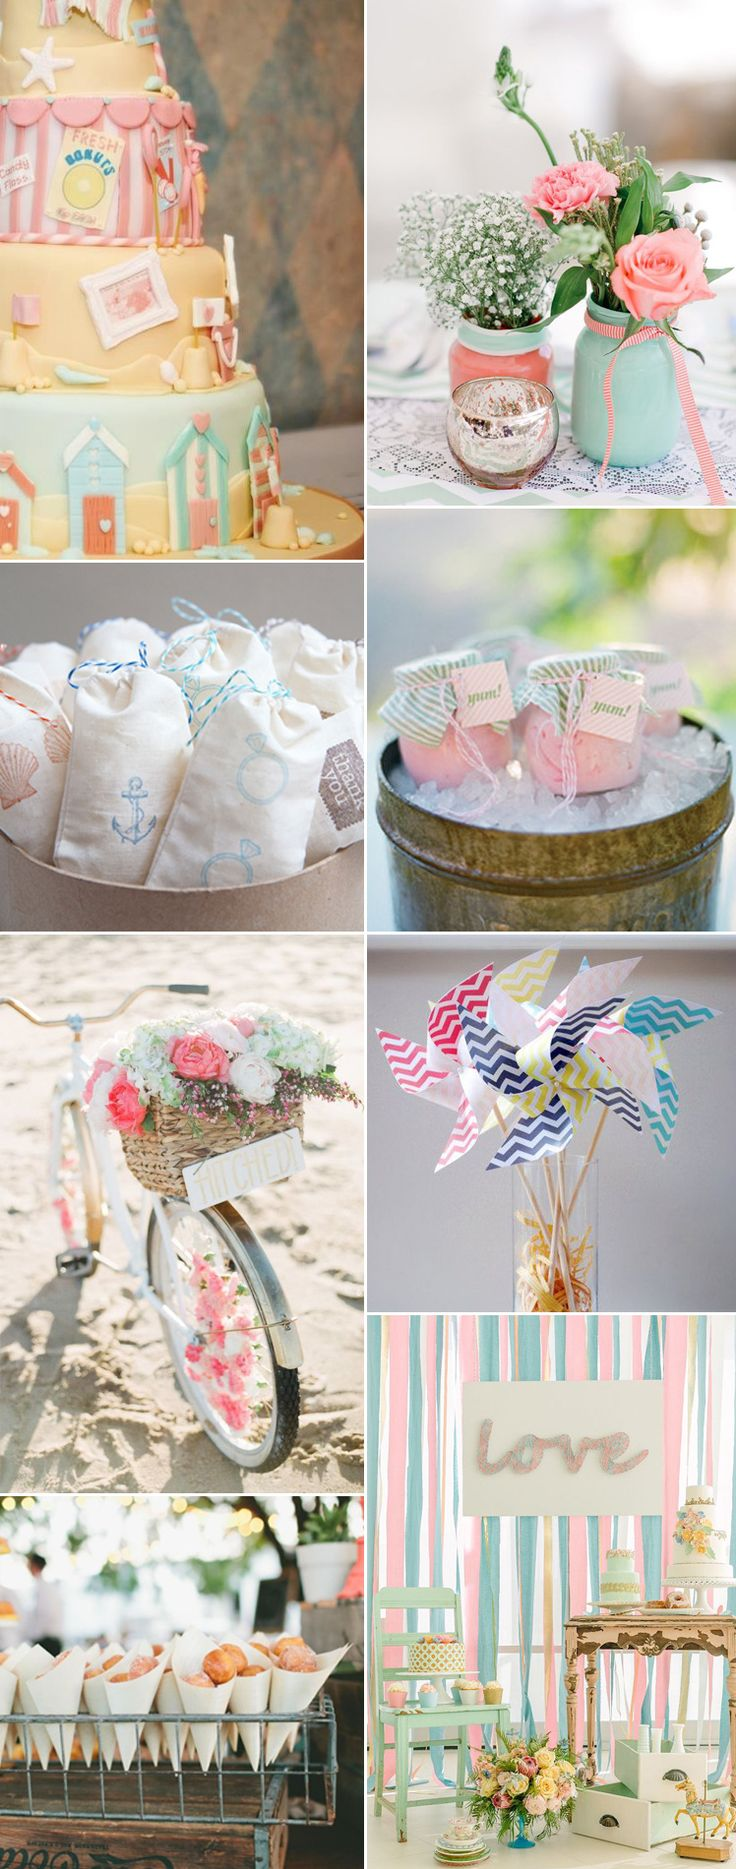 afternoon tewedding theme ideas%0A A quintessential seaside wedding  for more British seaside wedding ideas  take a look at GS